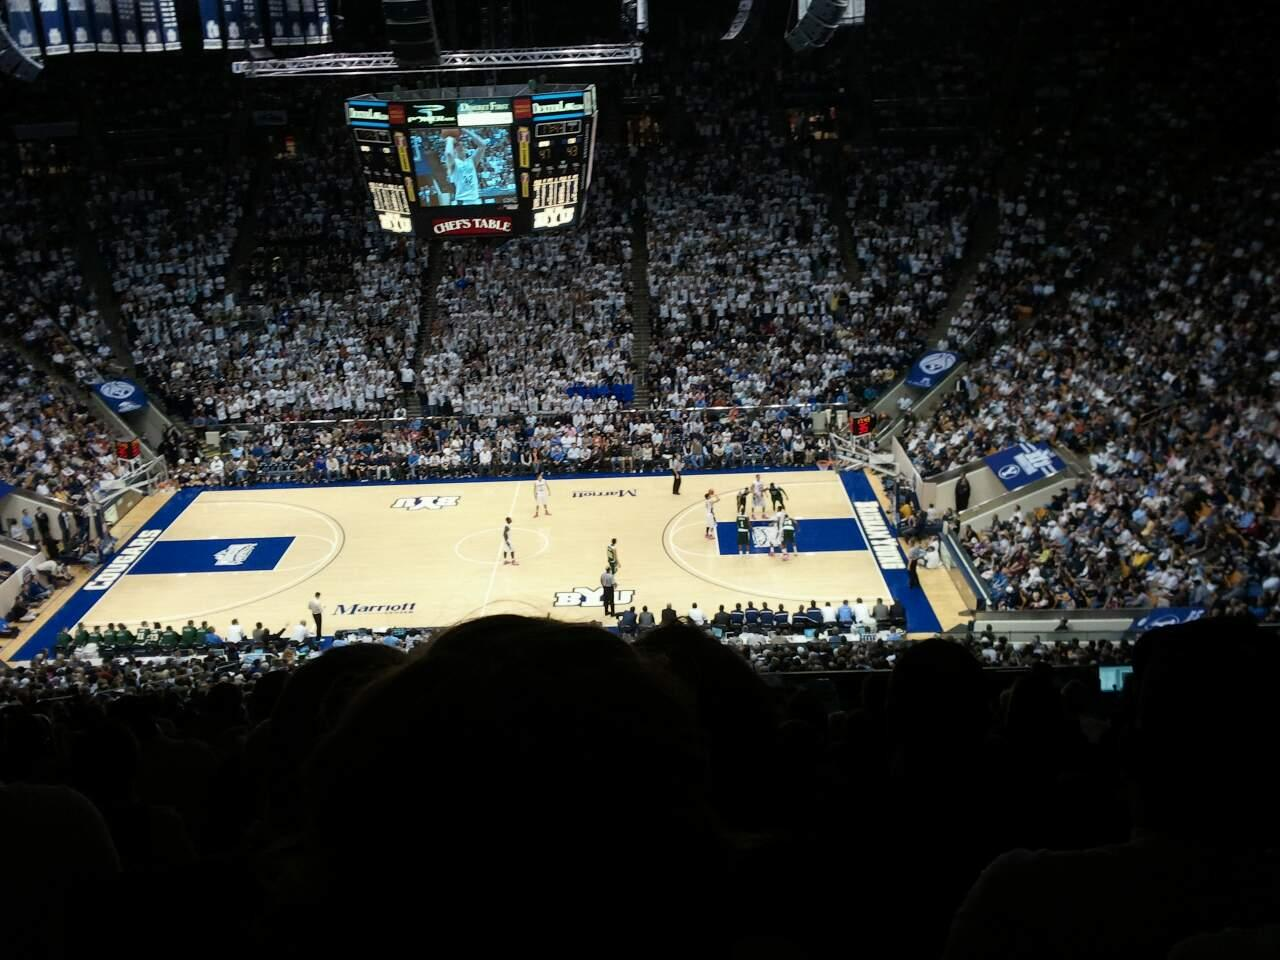 Marriott Center Section 106 Row 15 Seat 8